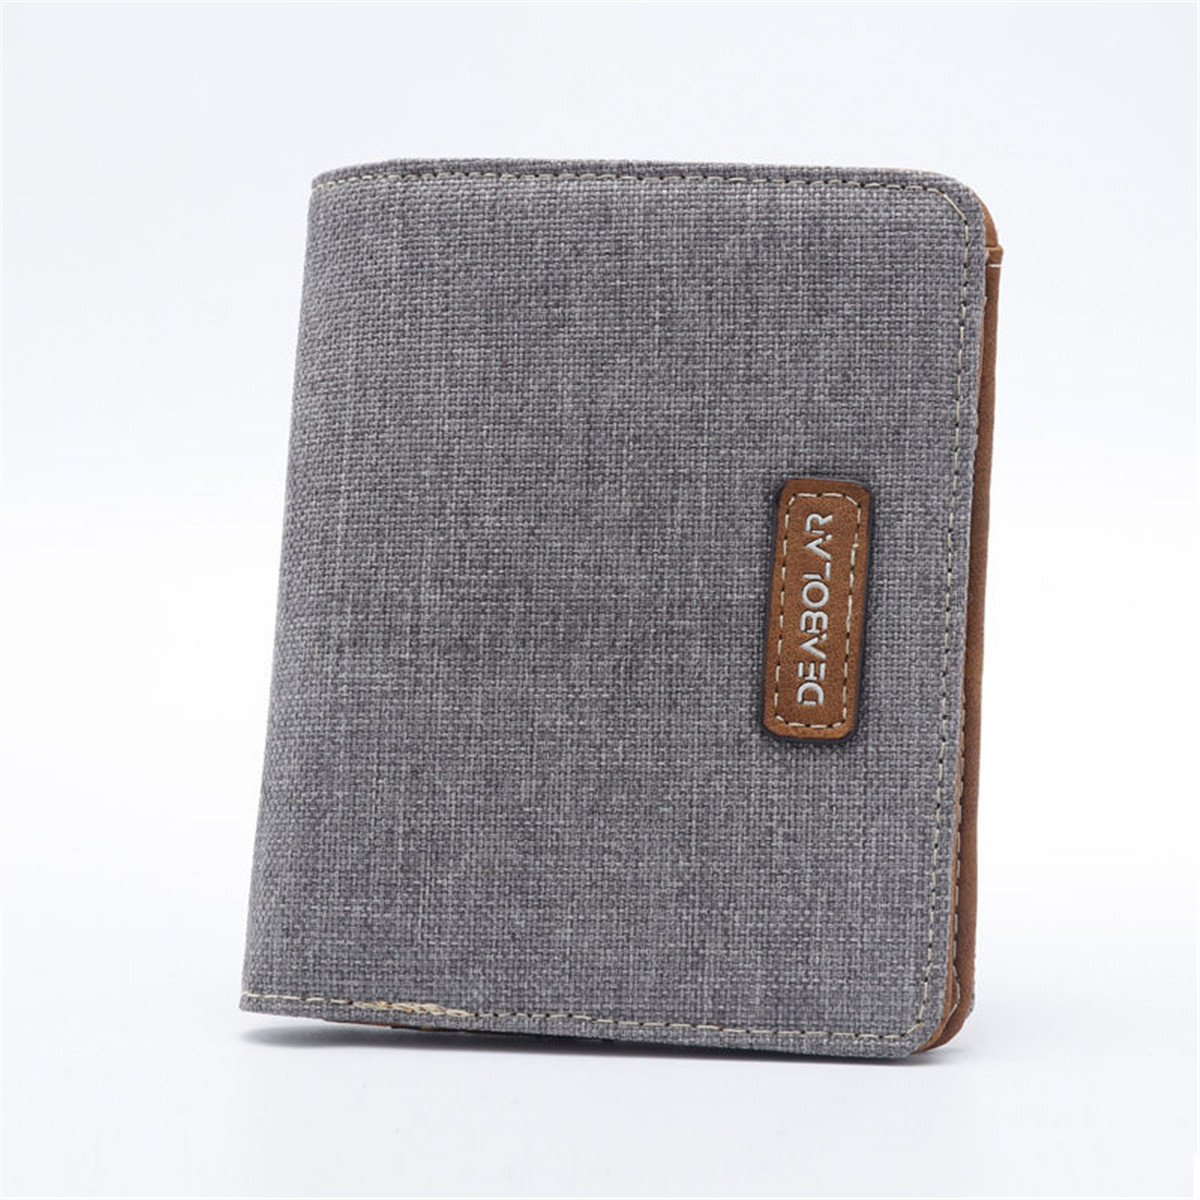 Men-Short-Canvas-Slim-Bifold-ID-Wallet-Clutch-Handbag-Credit-Card-Purse-Holder